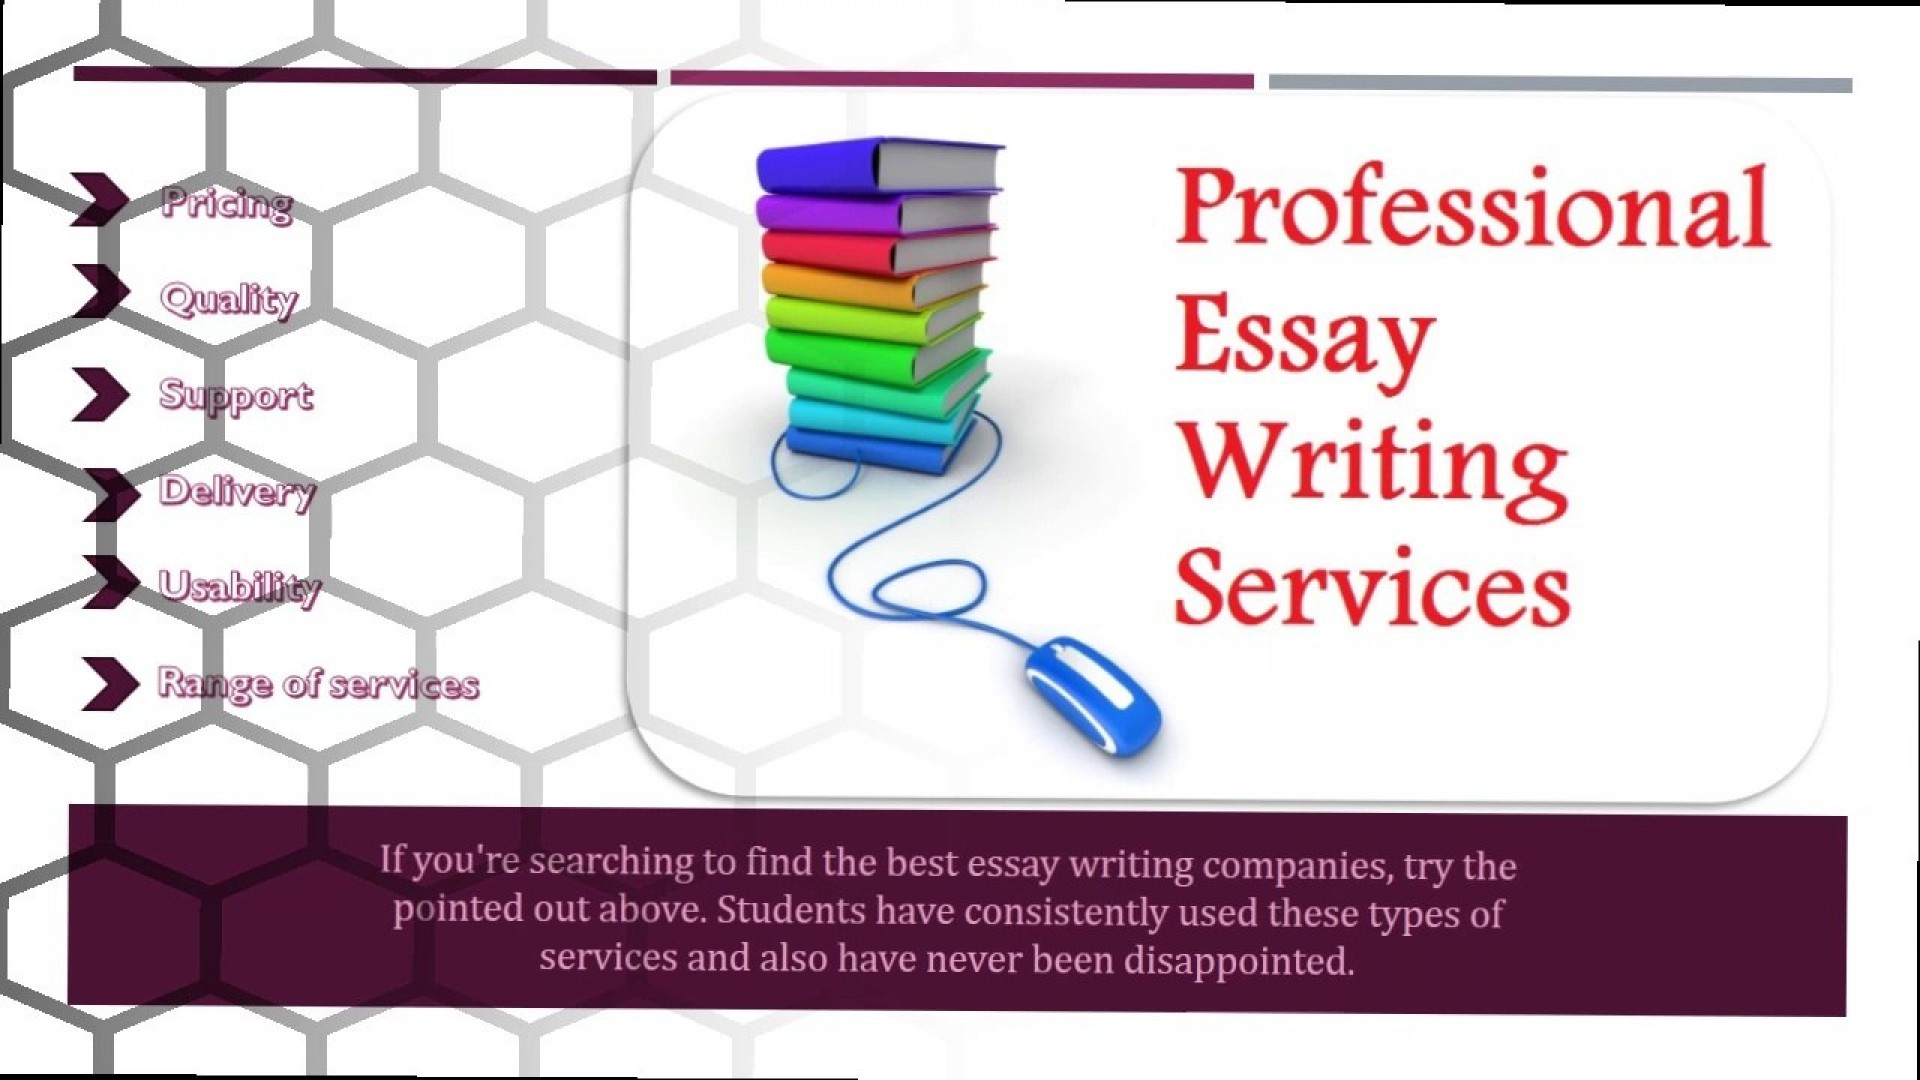 006 Cheap Essay Writing Service Uk Example Best Reviews Dissertation 1280x72 Reddit Law Discount Code Forum Price Incredible 1920